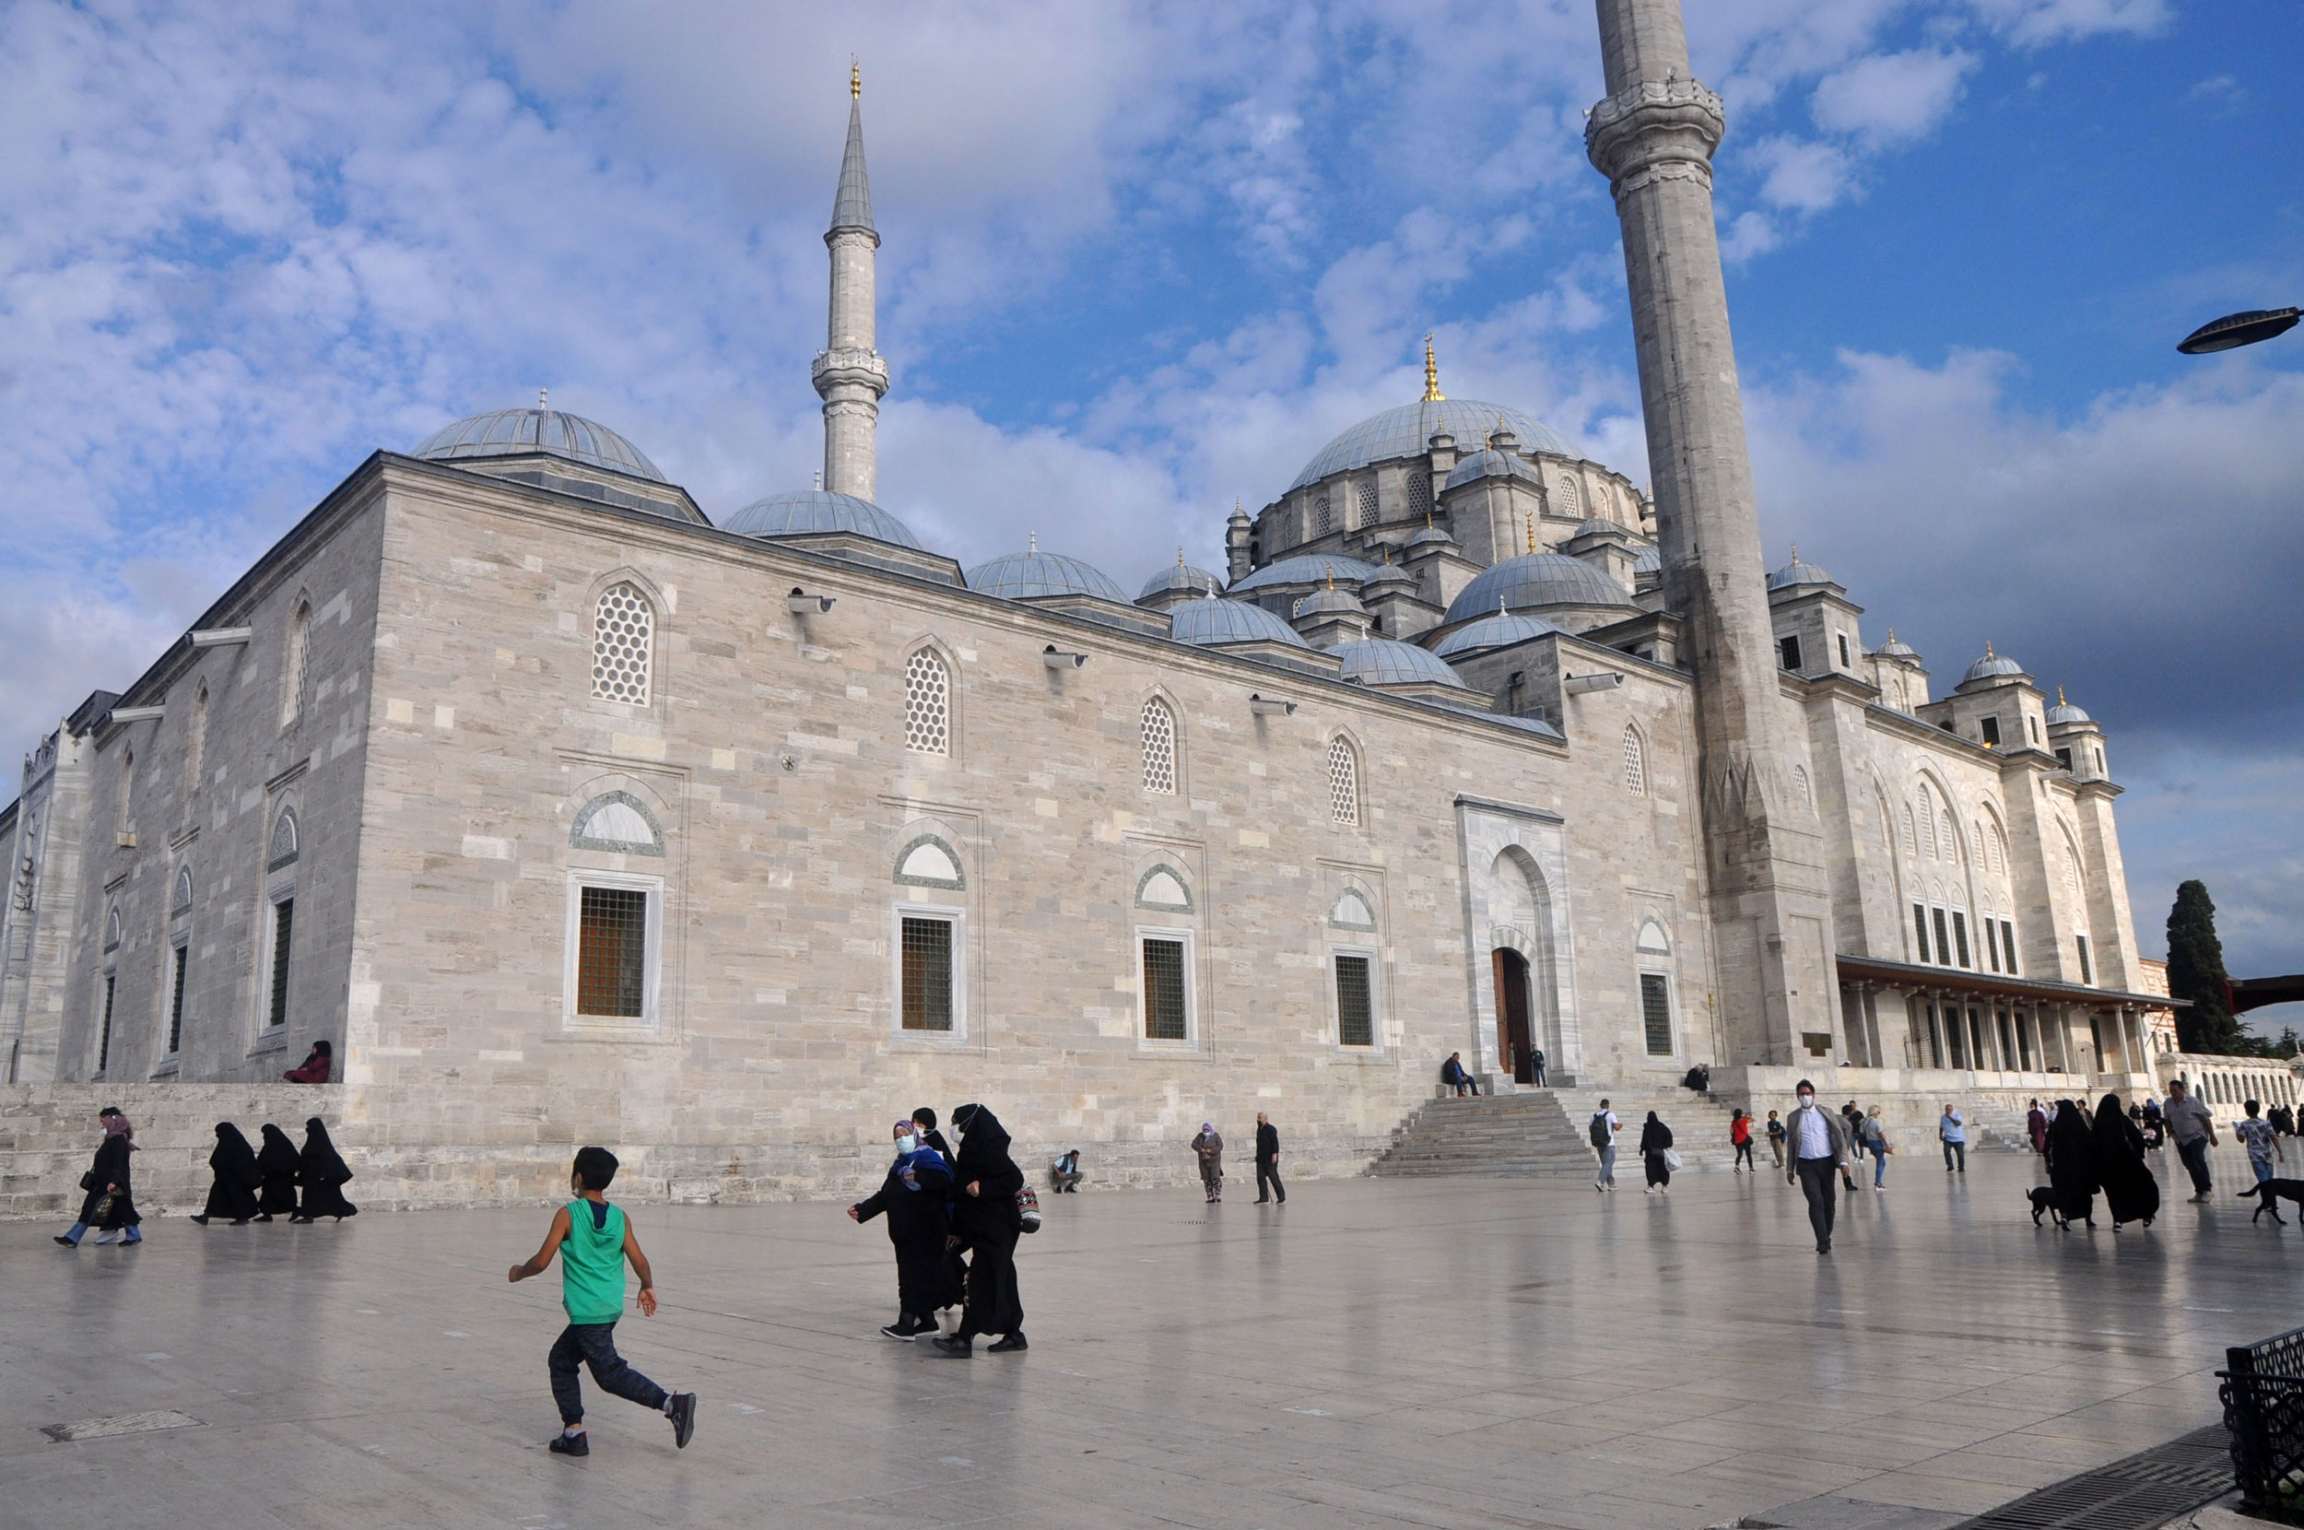 The grounds of the Fatih Mosque, first built in the 15th century, serve as a popular community space for the Syrian community